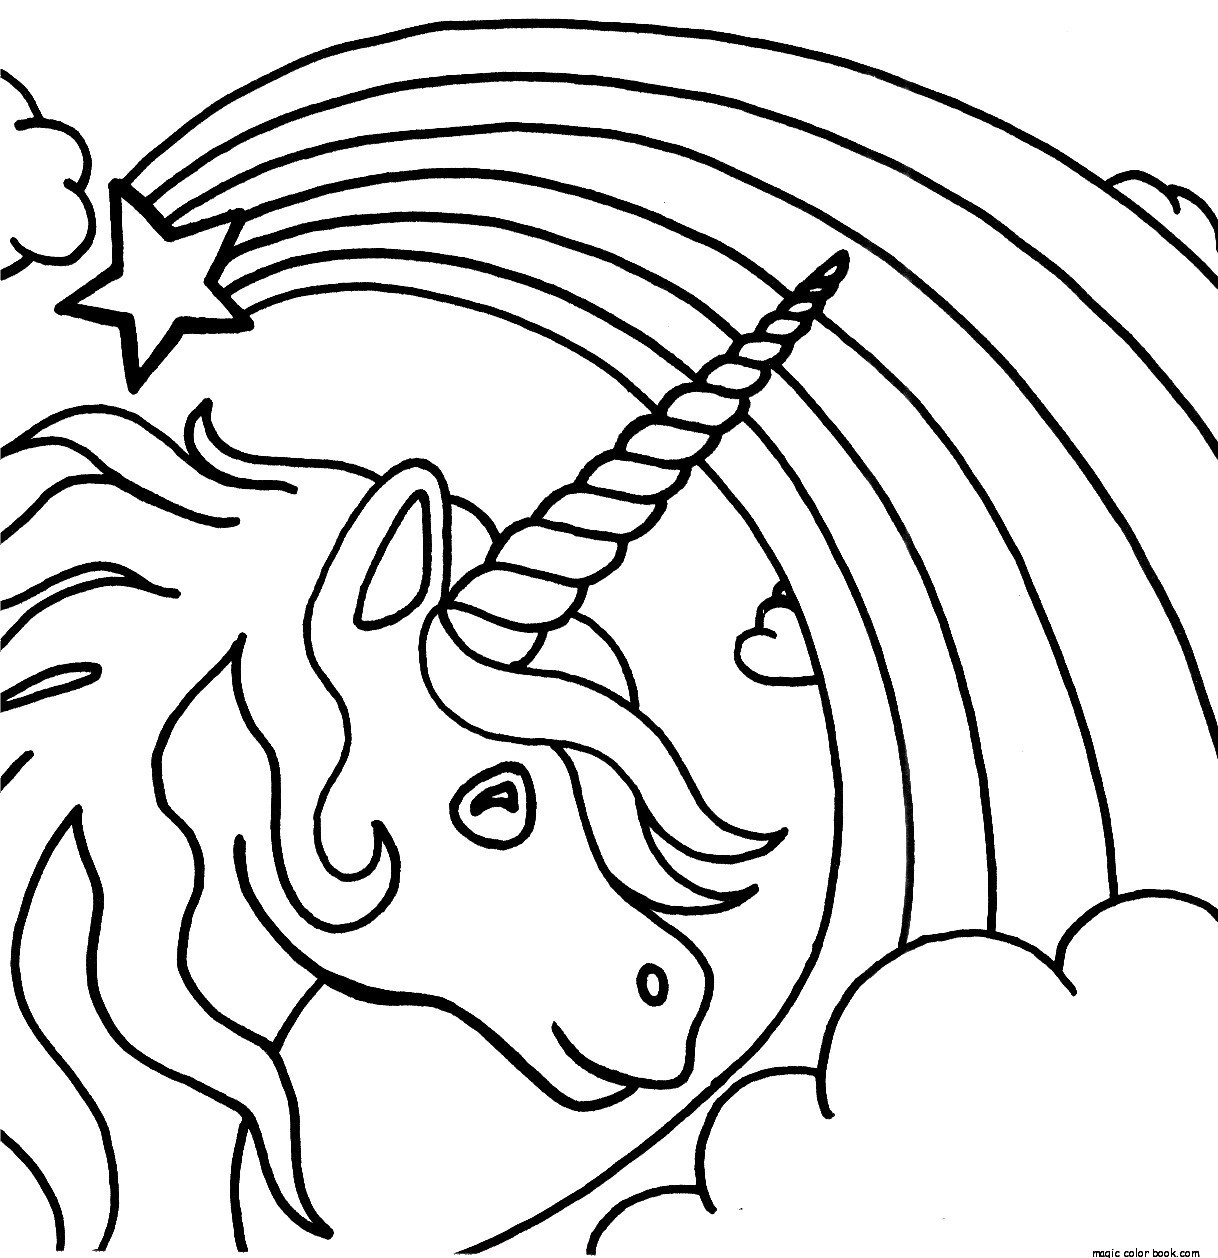 Coloring   Free Printable Coloring Pages For Kids Moana Bible Boys